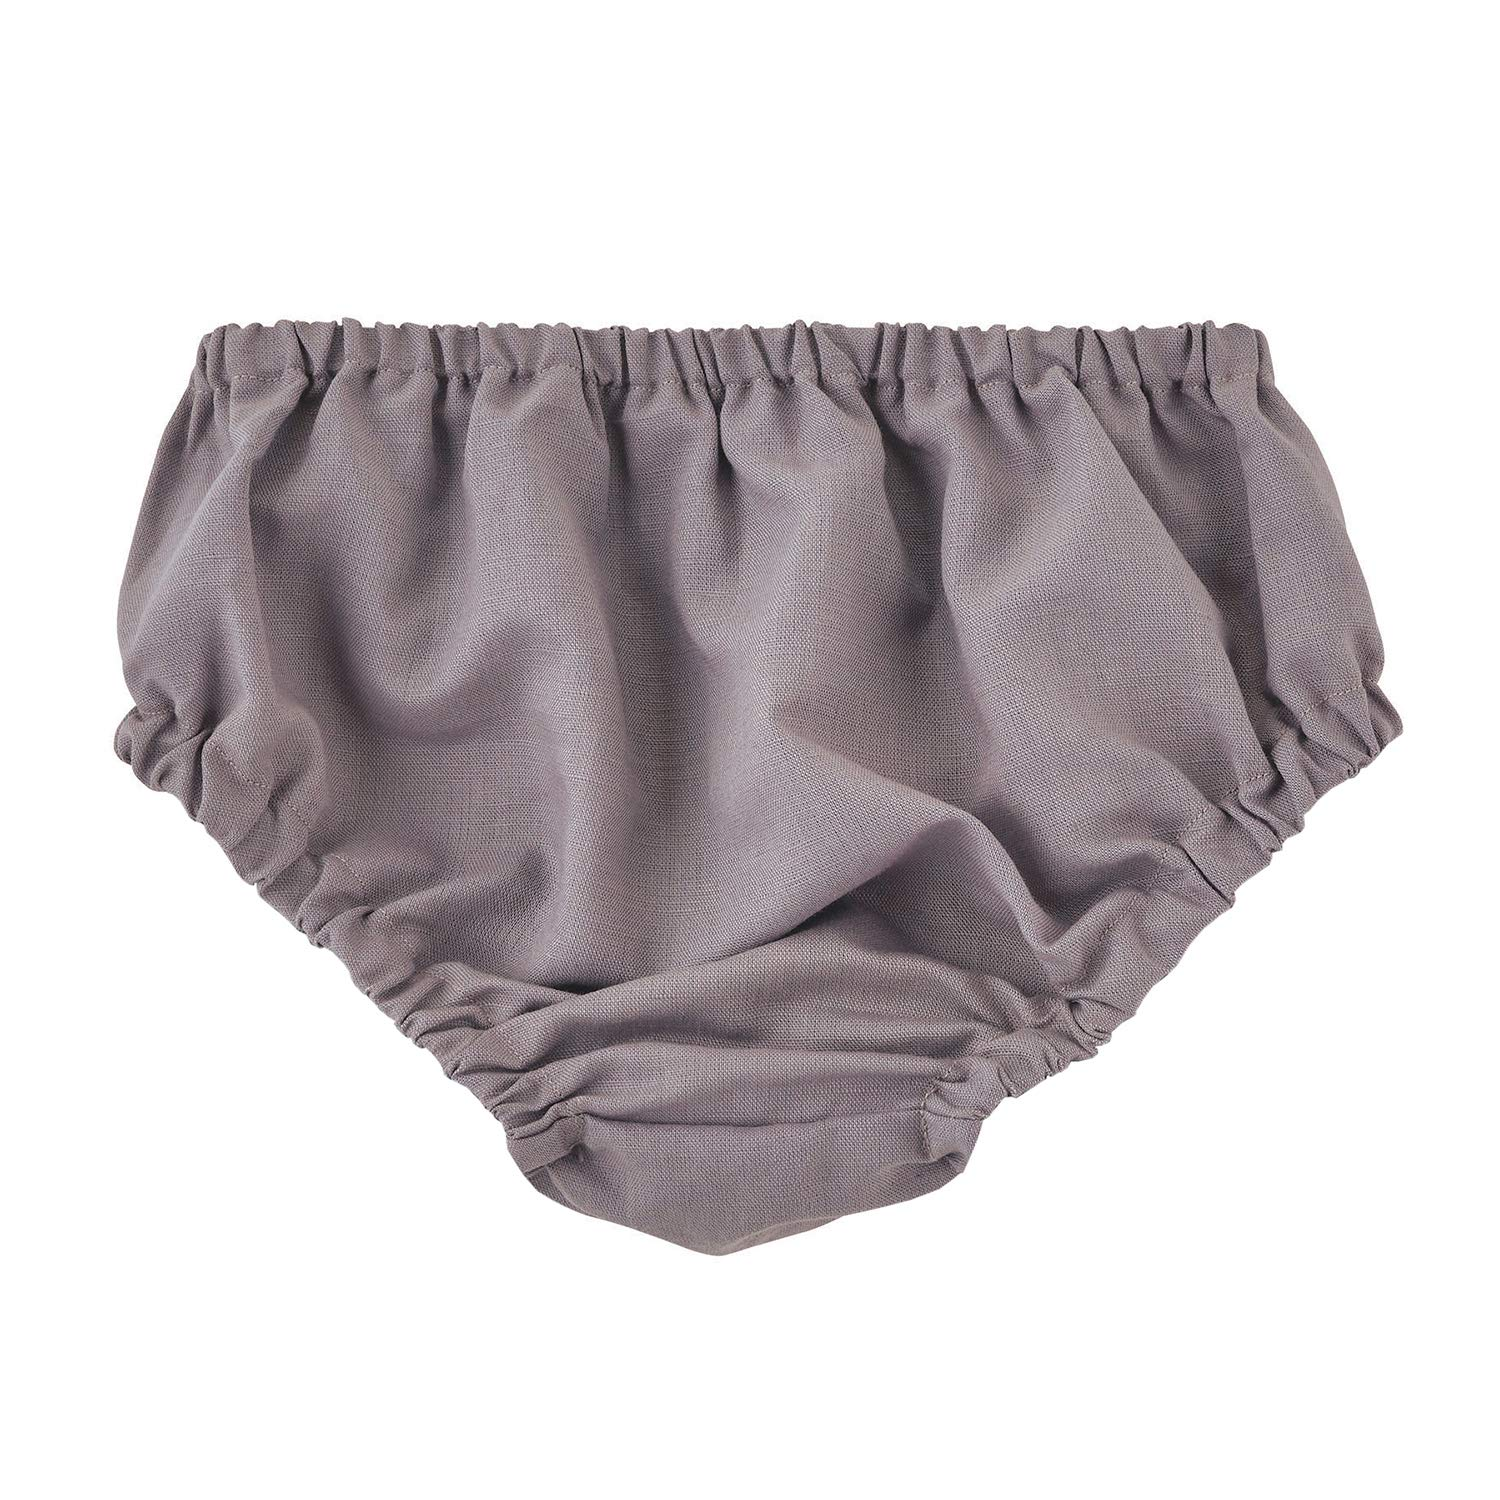 Stephan Baby Heirloomed Collection Linen Weave Cotton Diaper Cover Bloomers, Gray, Fits 6-12 Months